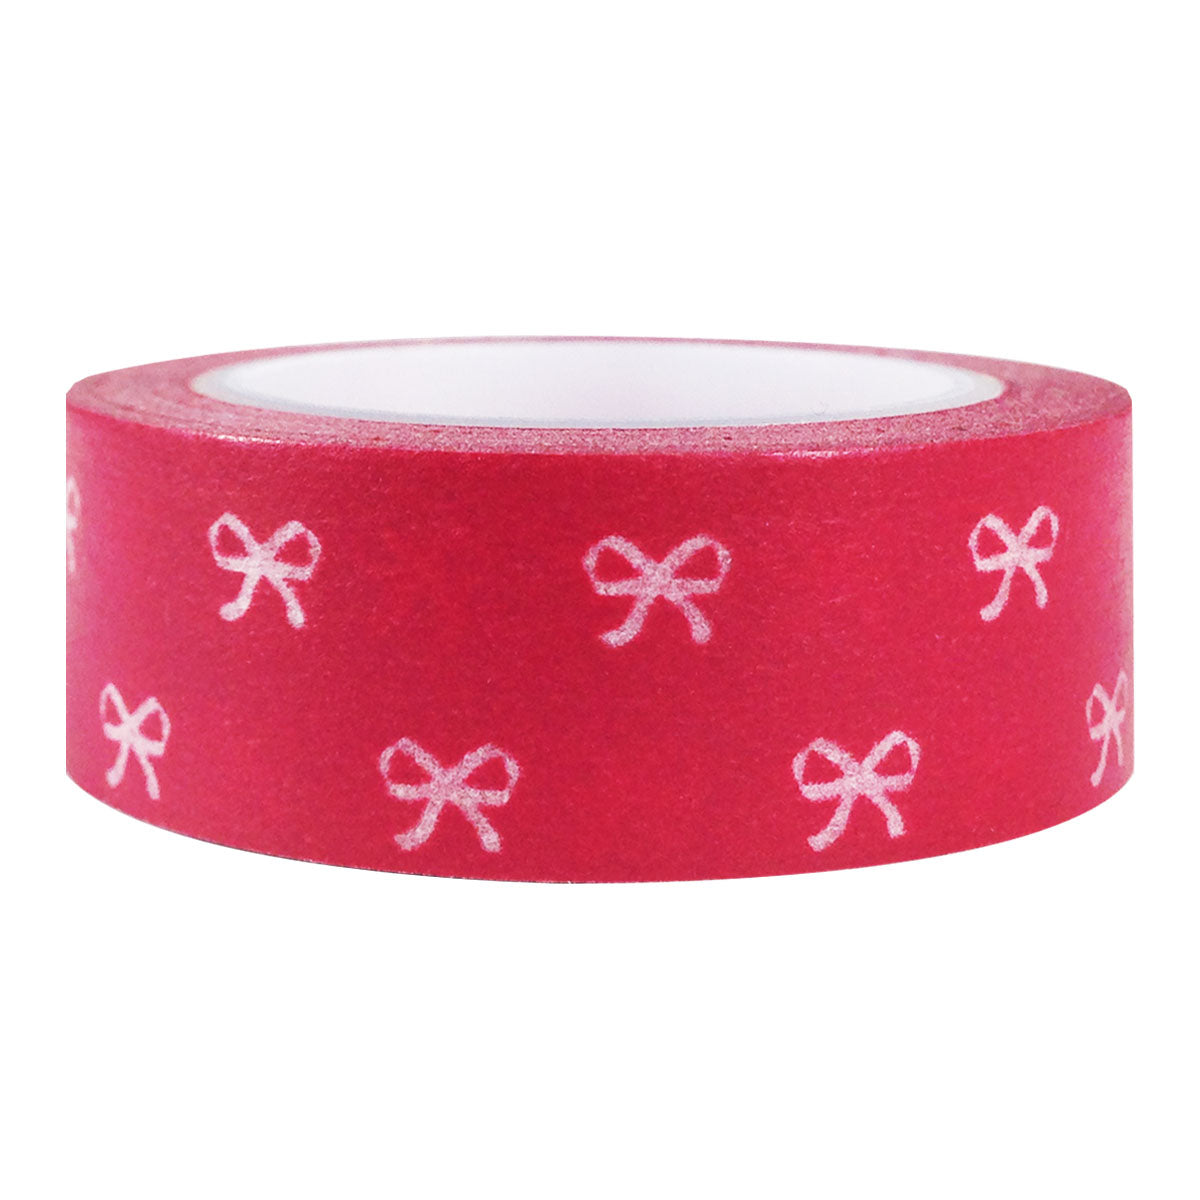 Wrapables Colorful Patterns Japanese Washi Masking Tape